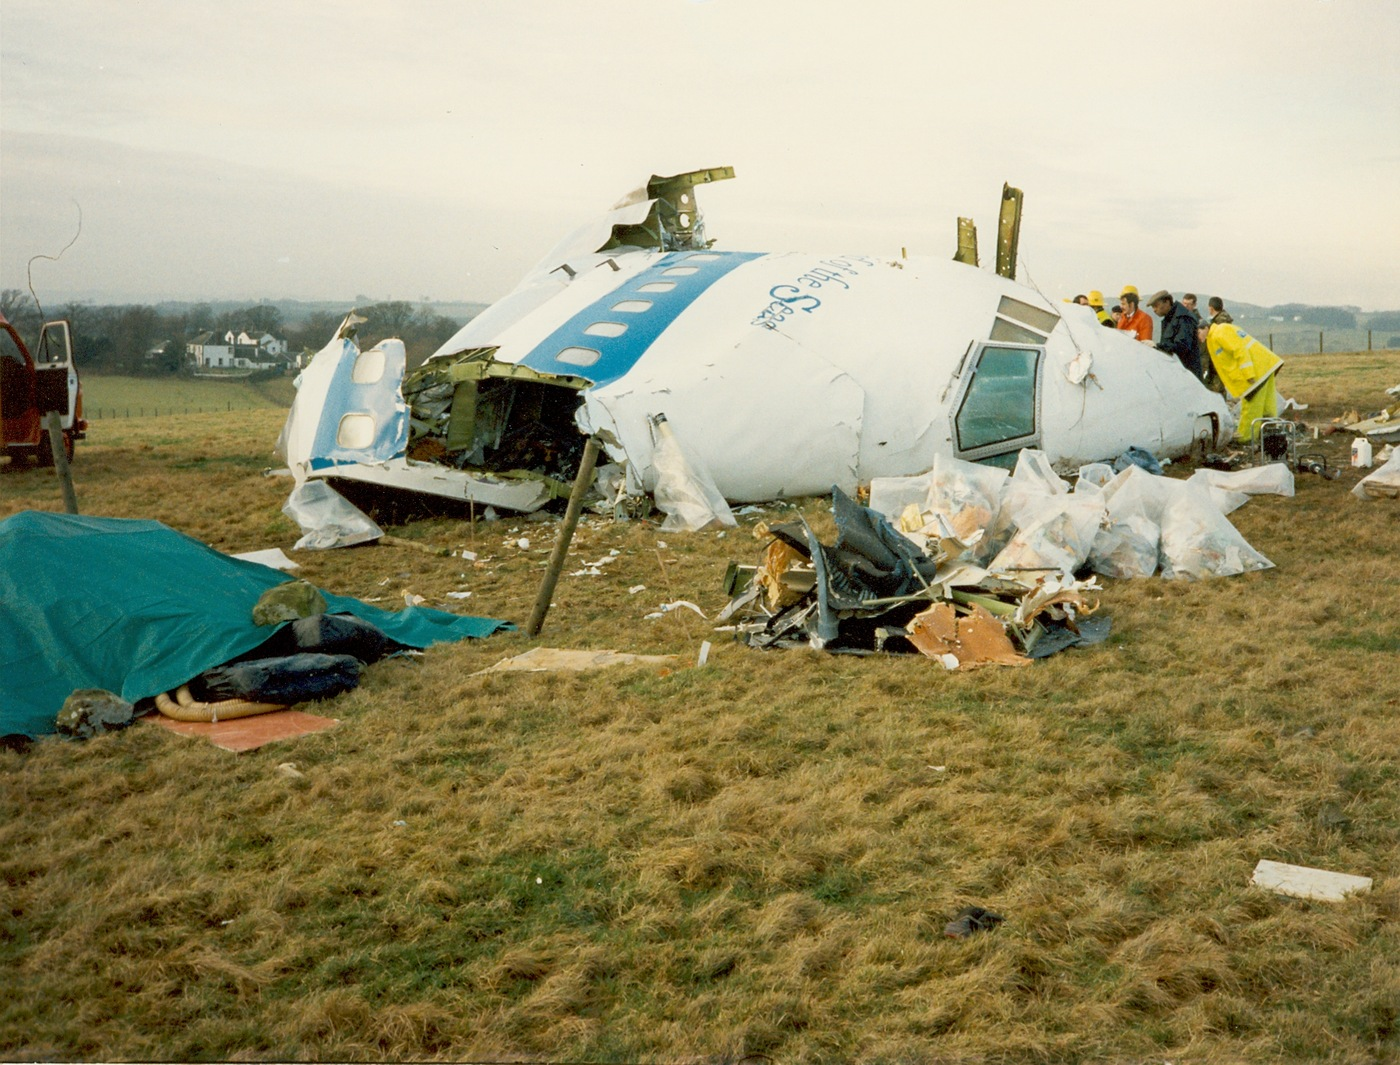 Part of fuselage recovered from the terrorist bombing on December 21, 1988 of Pan Am Flight 103 as it was en route from London to New York carrying 259 people. All onboard were killed as well as 11 people on thew ground in the town of Lockerbie, Scotland.